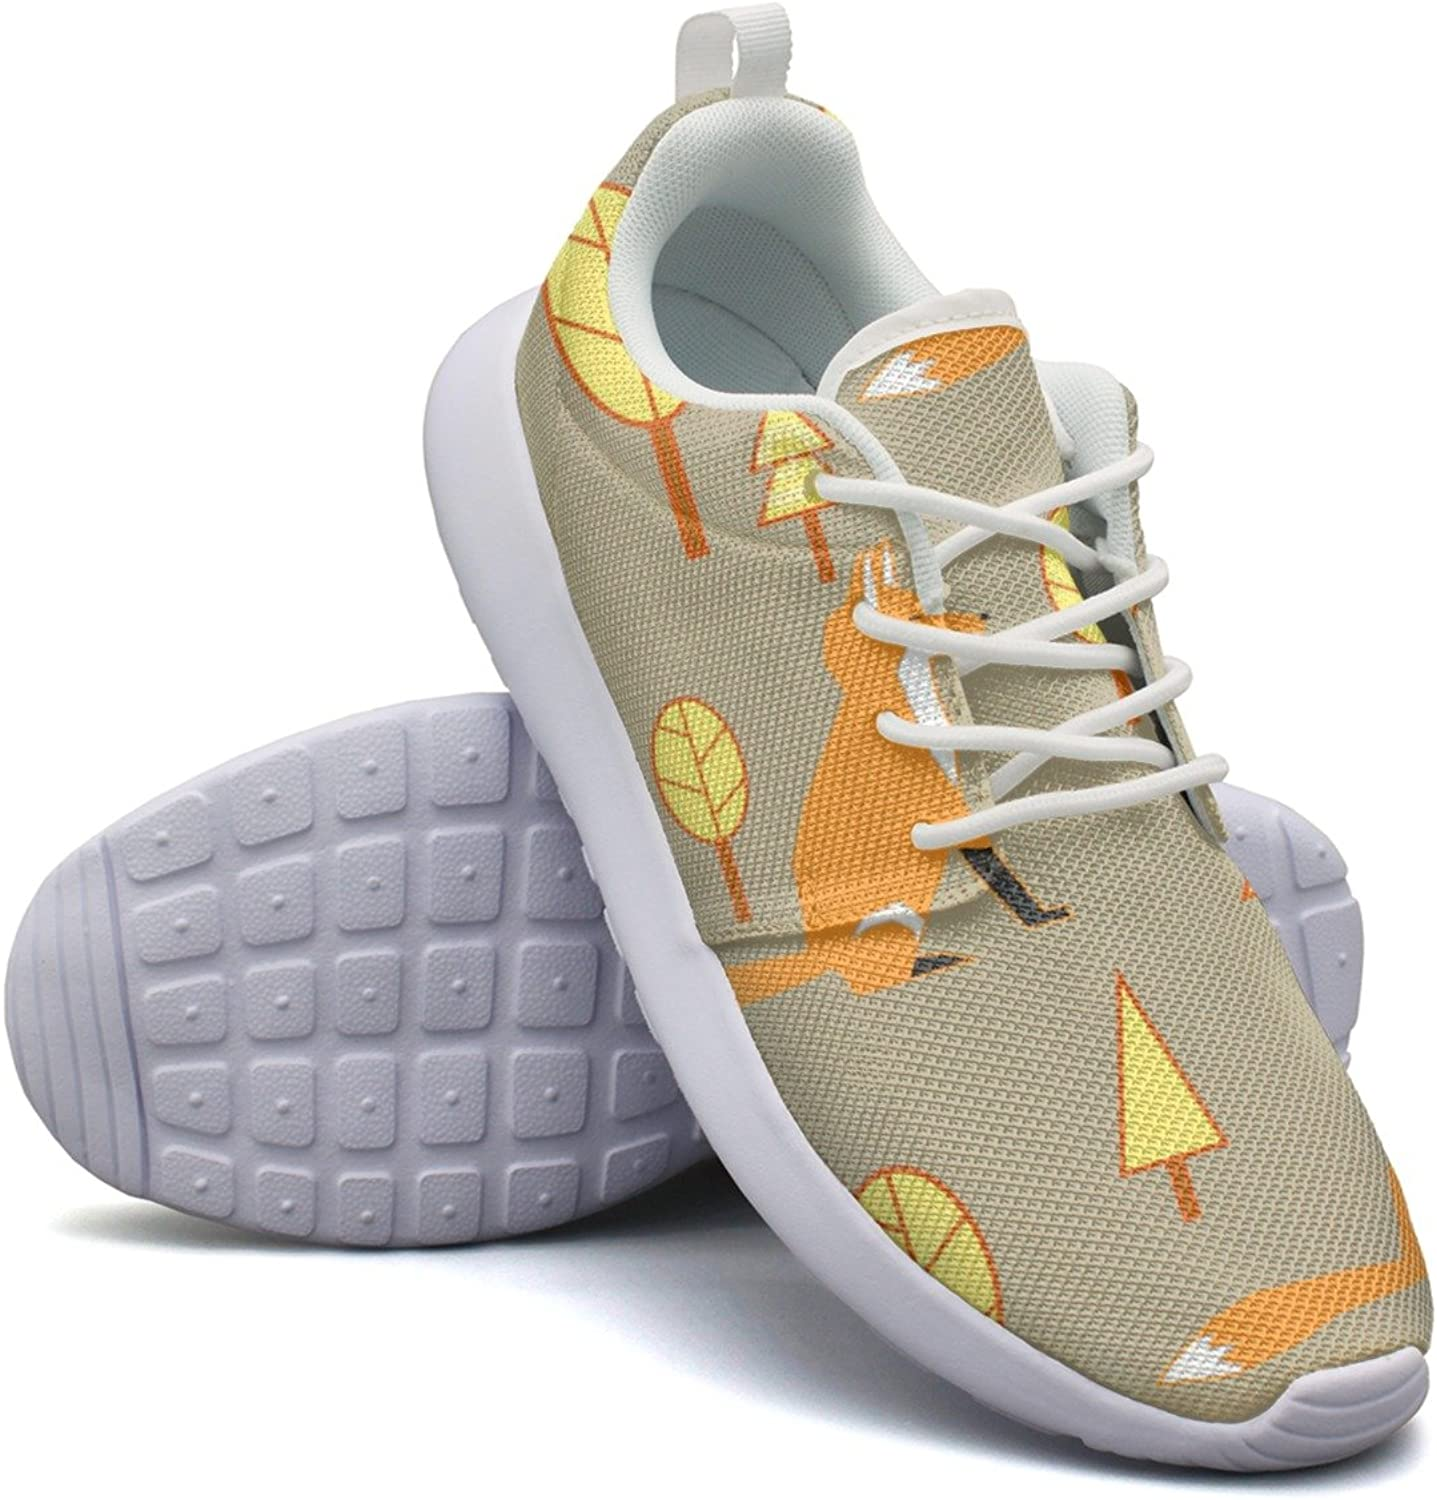 Awesome Fox Pattern Womans Top Casual Running shoes Novelty Cute